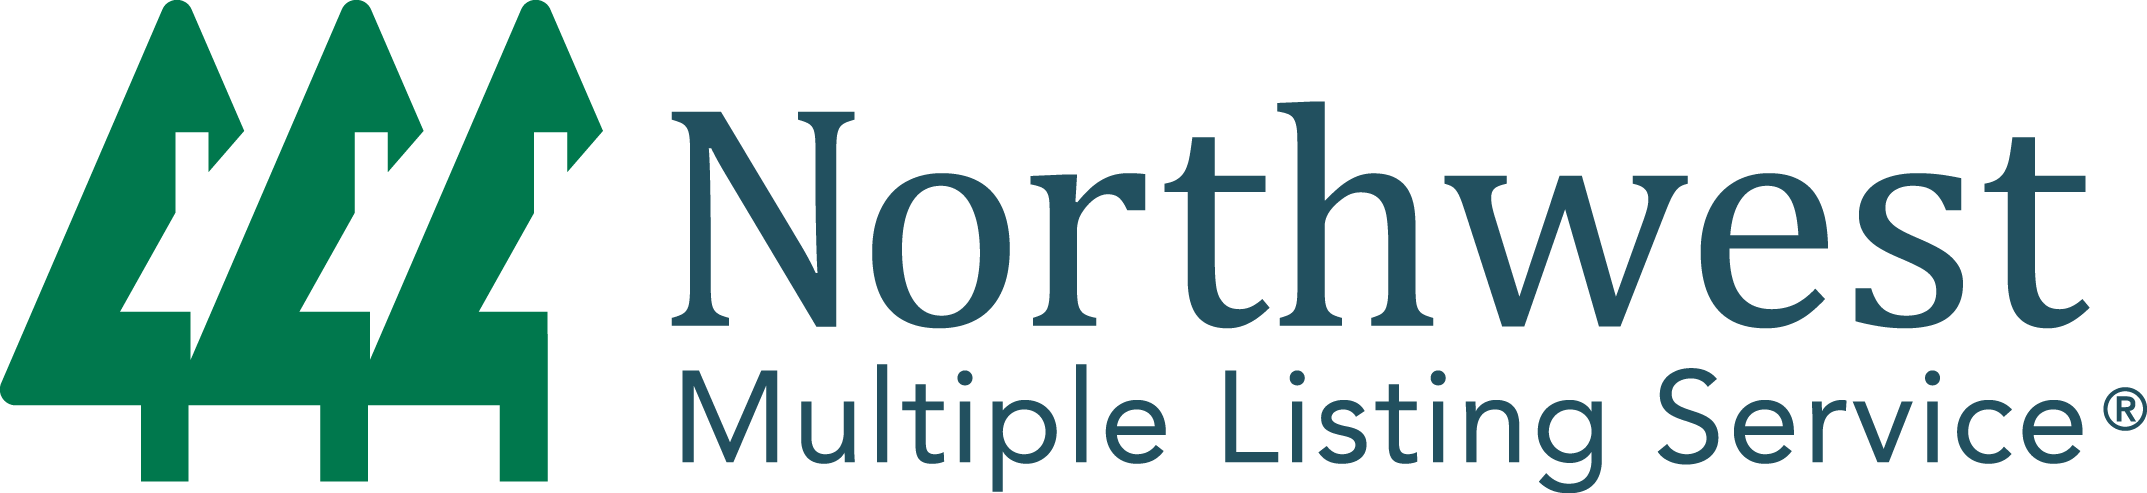 Northwest Multiple Listing Service logo